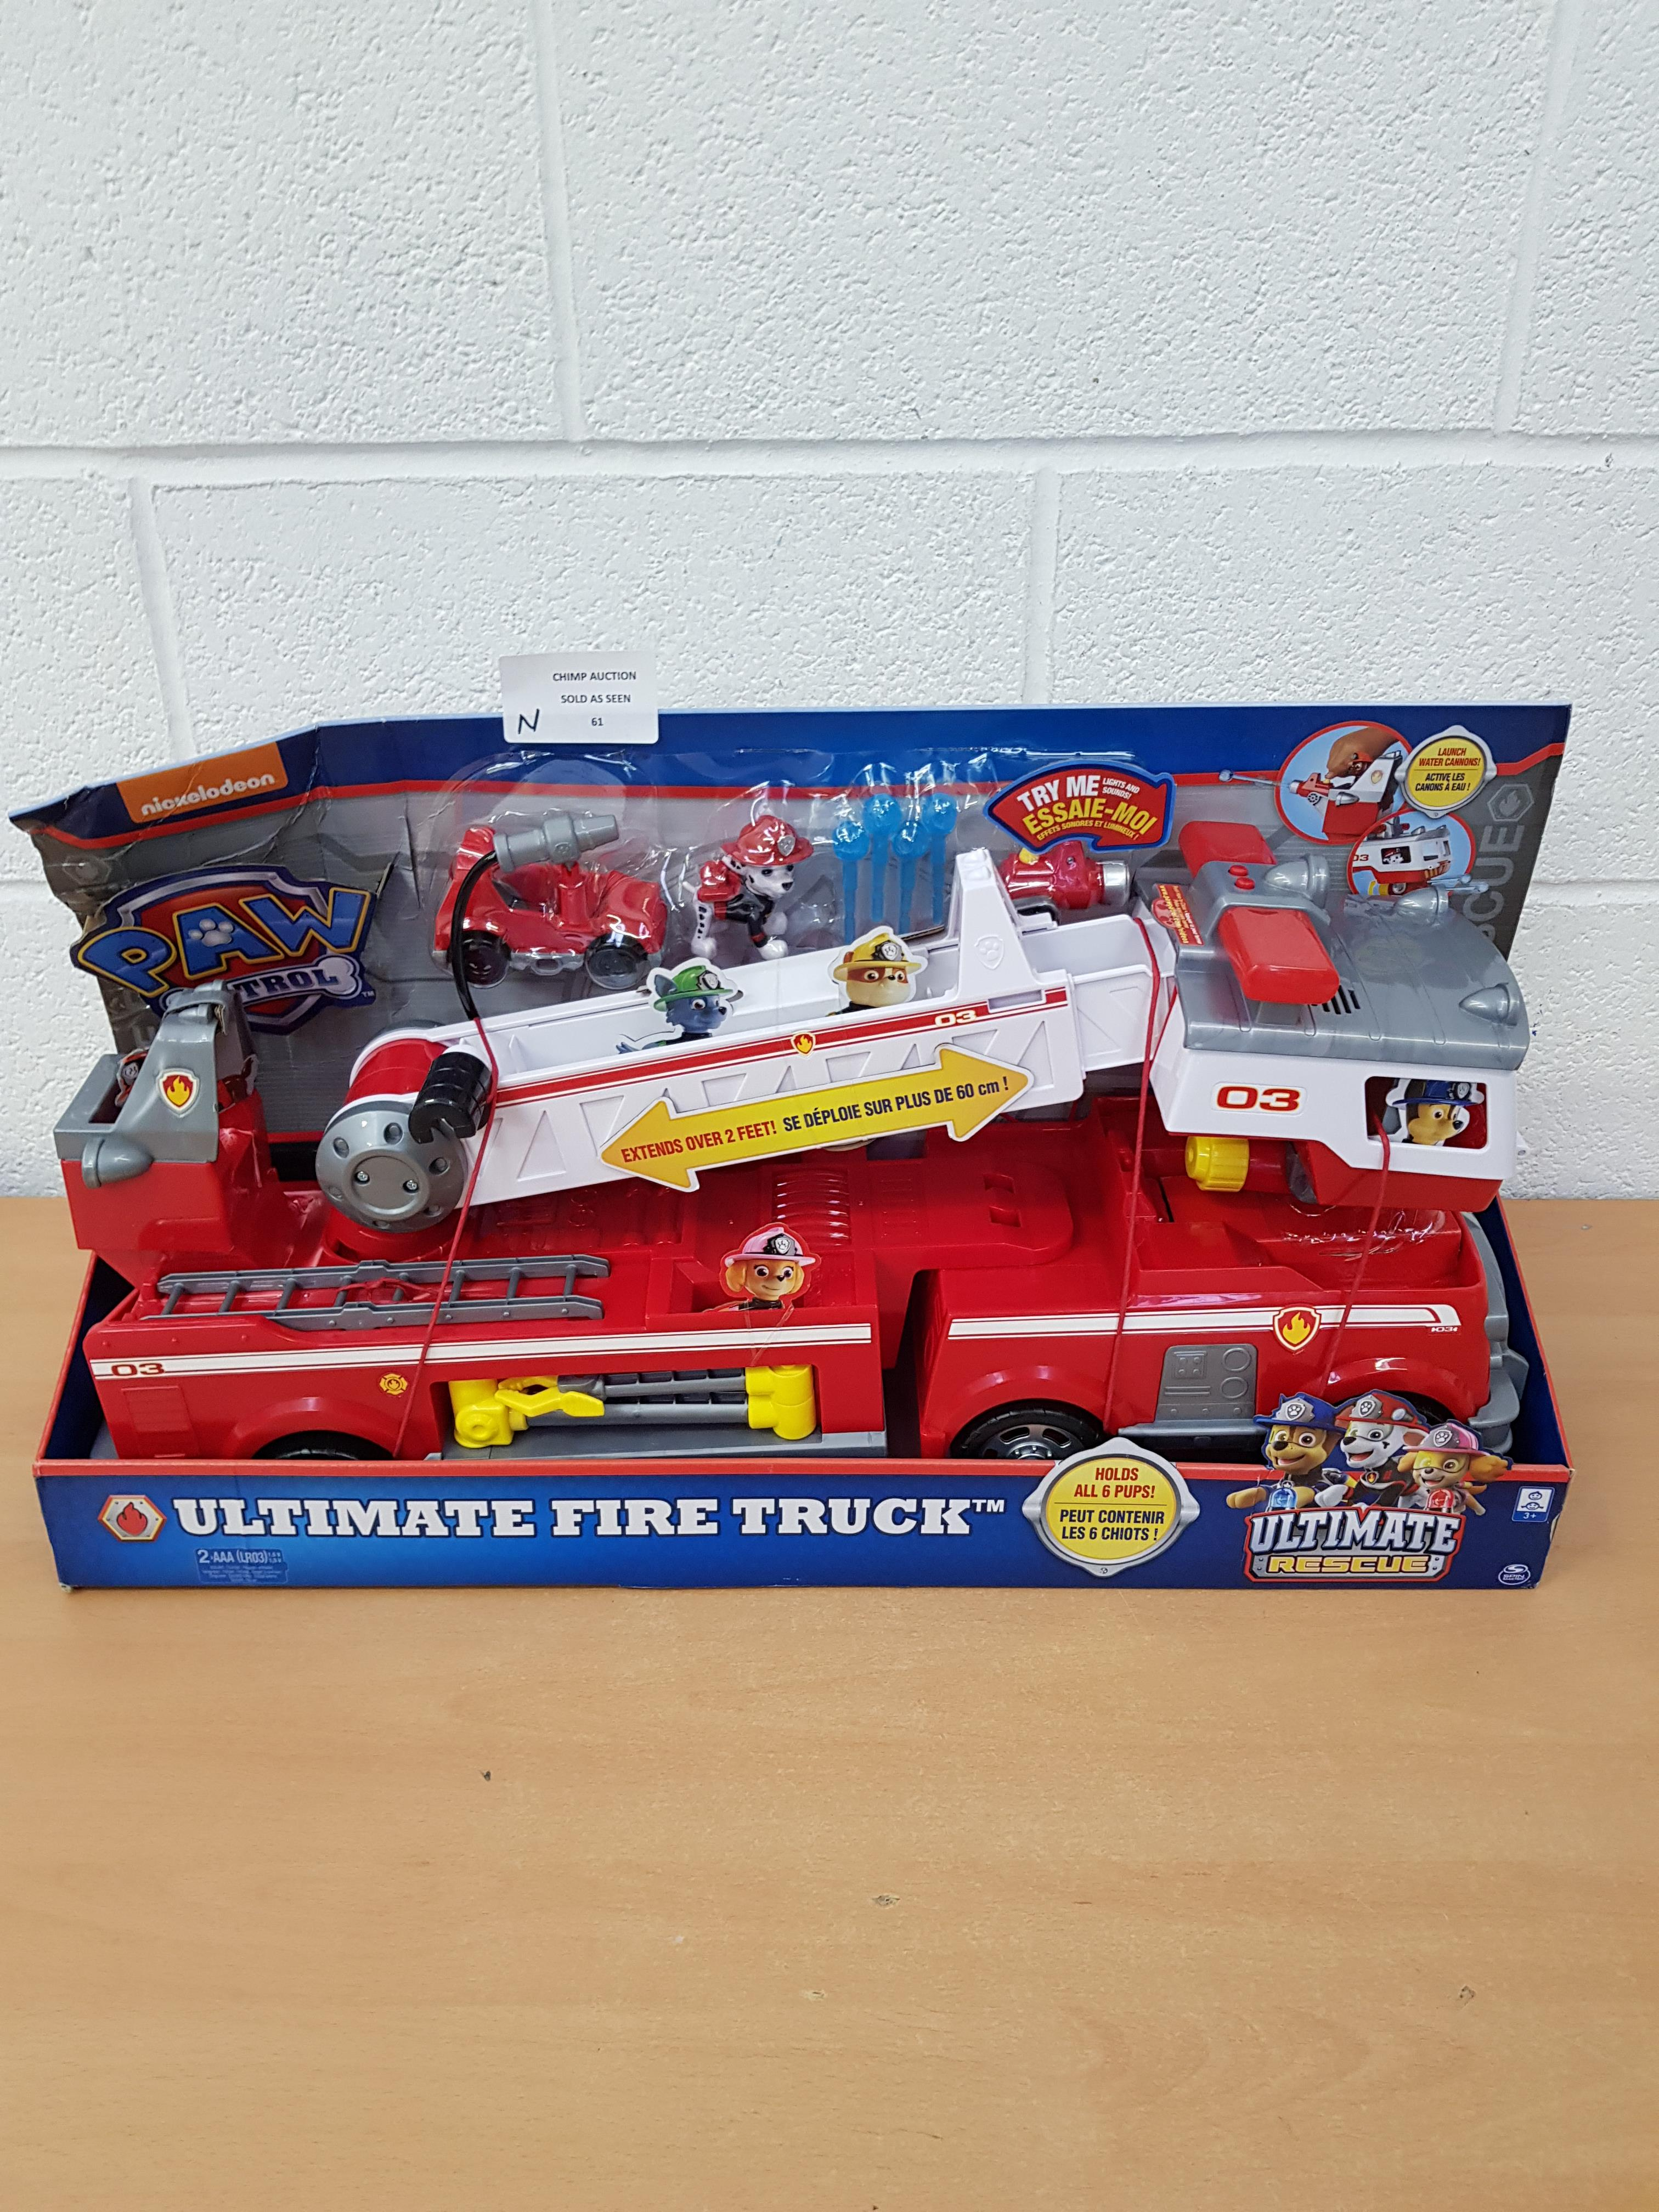 Lot 61 - Brand new PAW Patrol — Ultimate Rescue Fire Truck + 2ft Ladder RRP £69.99